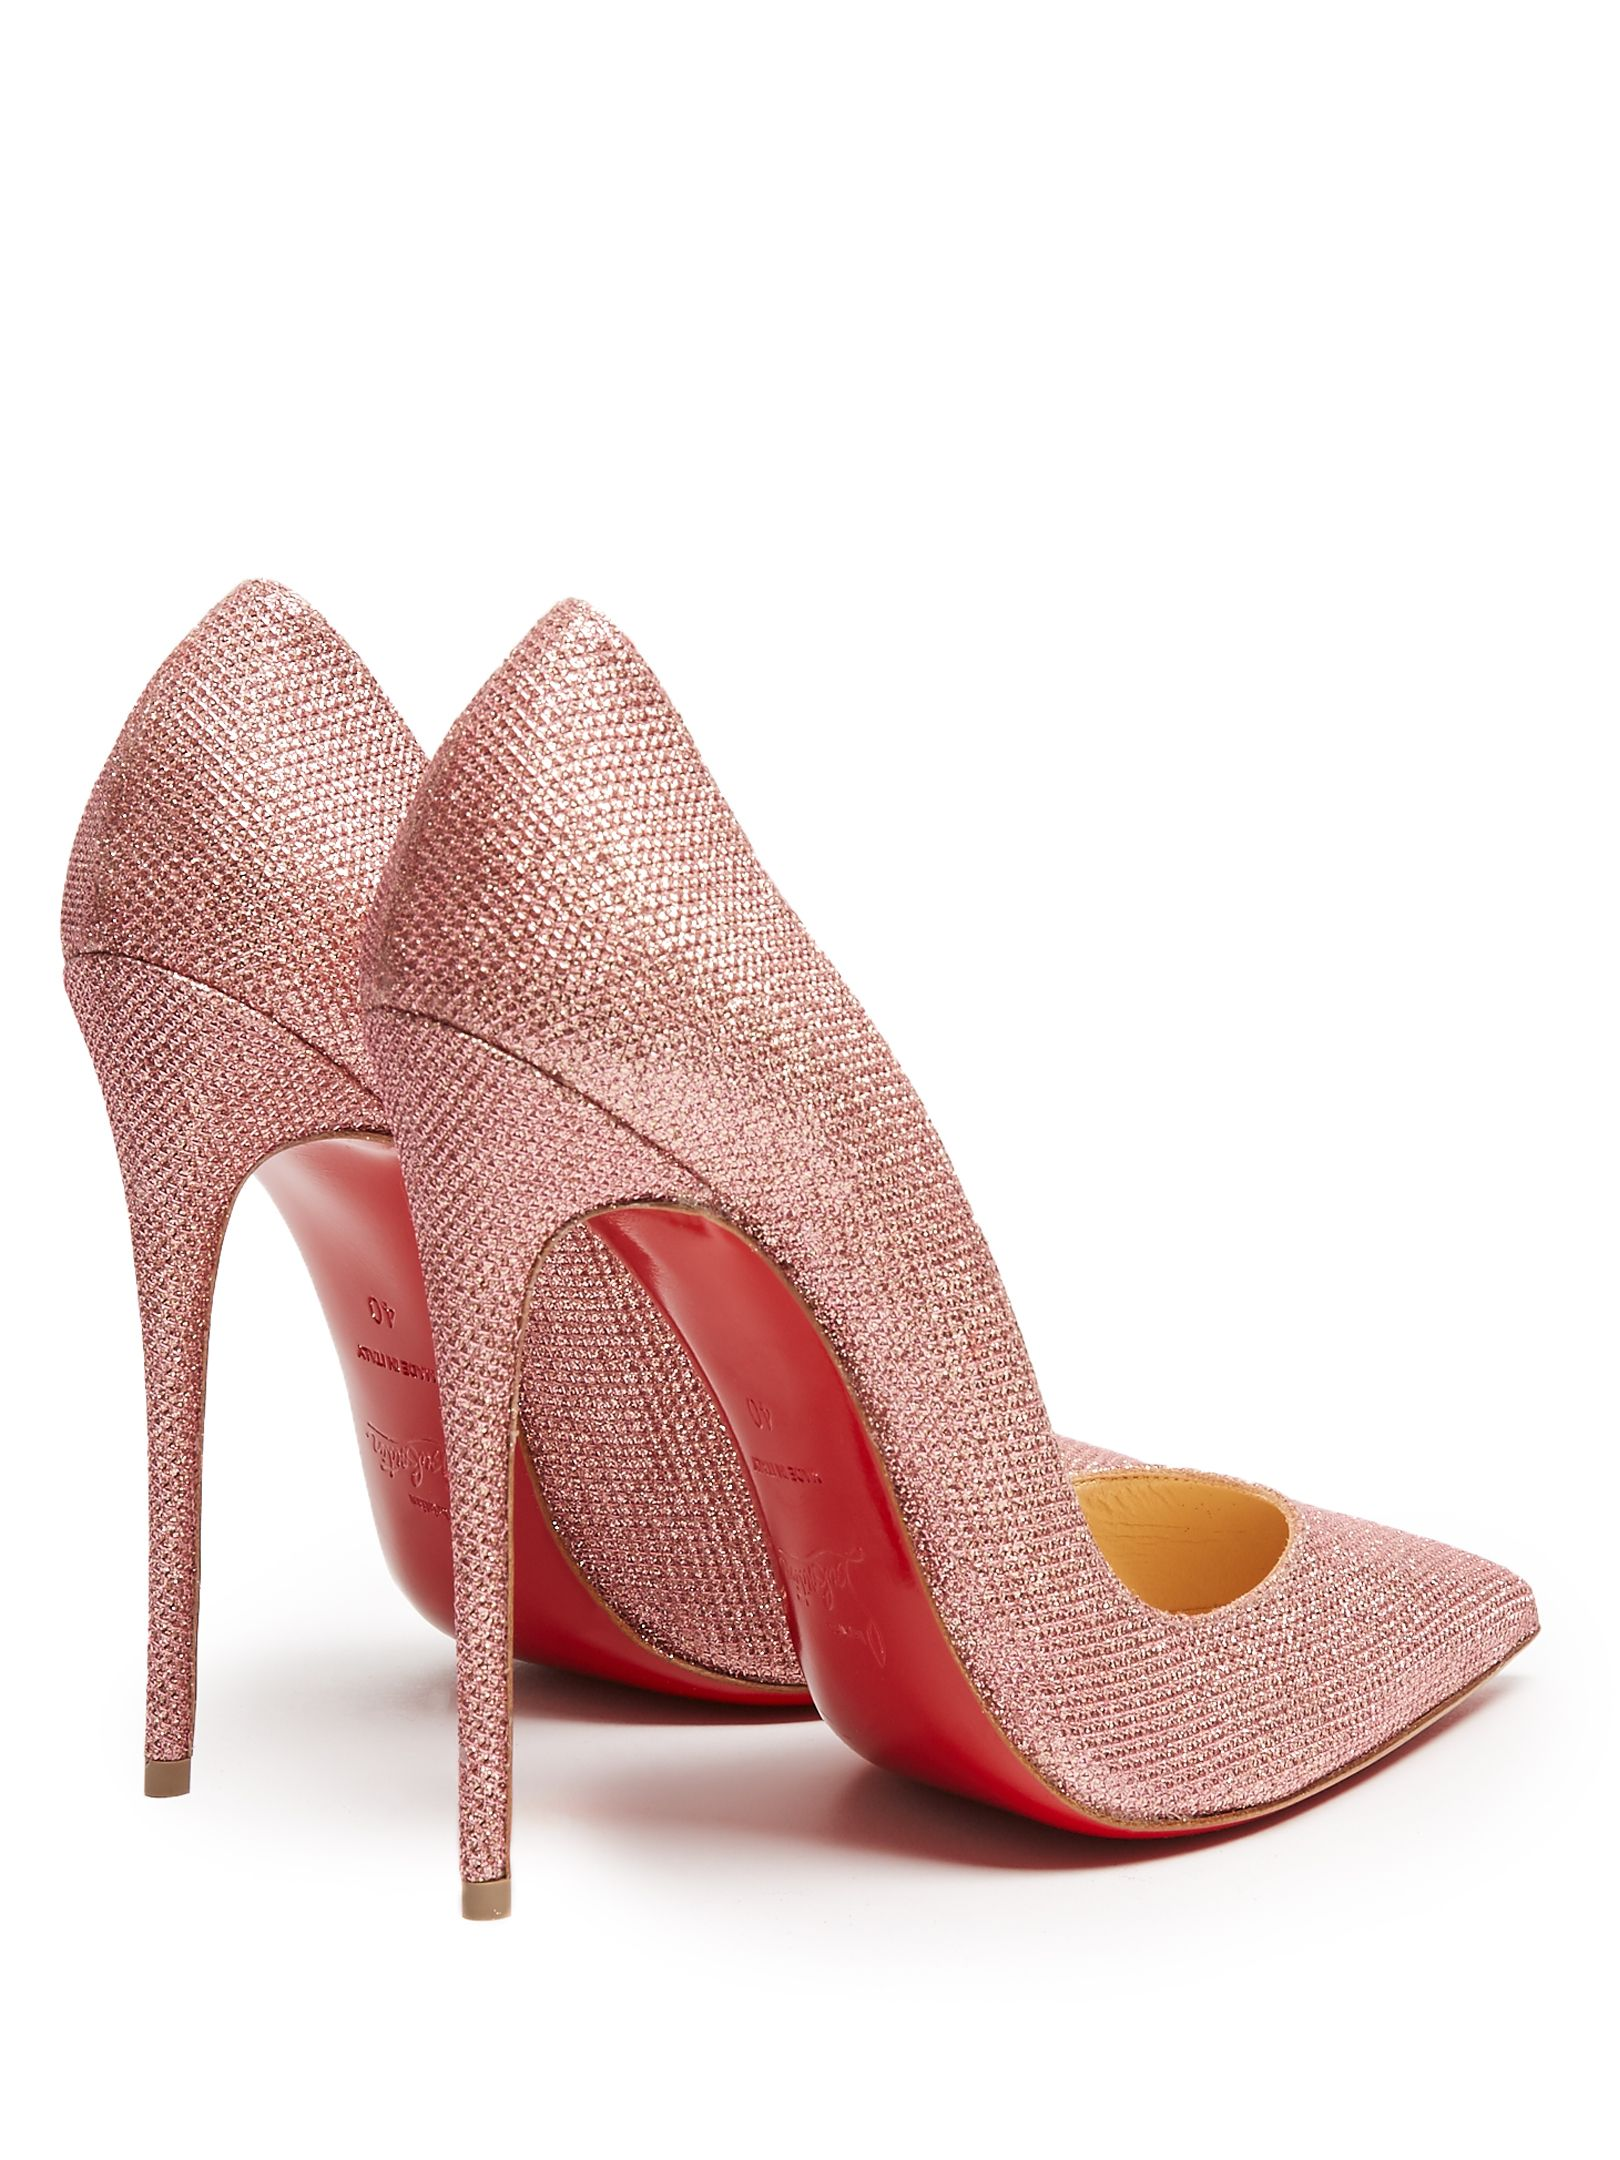 on sale d74b3 07306 CHRISTIAN LOUBOUTIN So Kate 120mm glitter pumps | Shoes ...